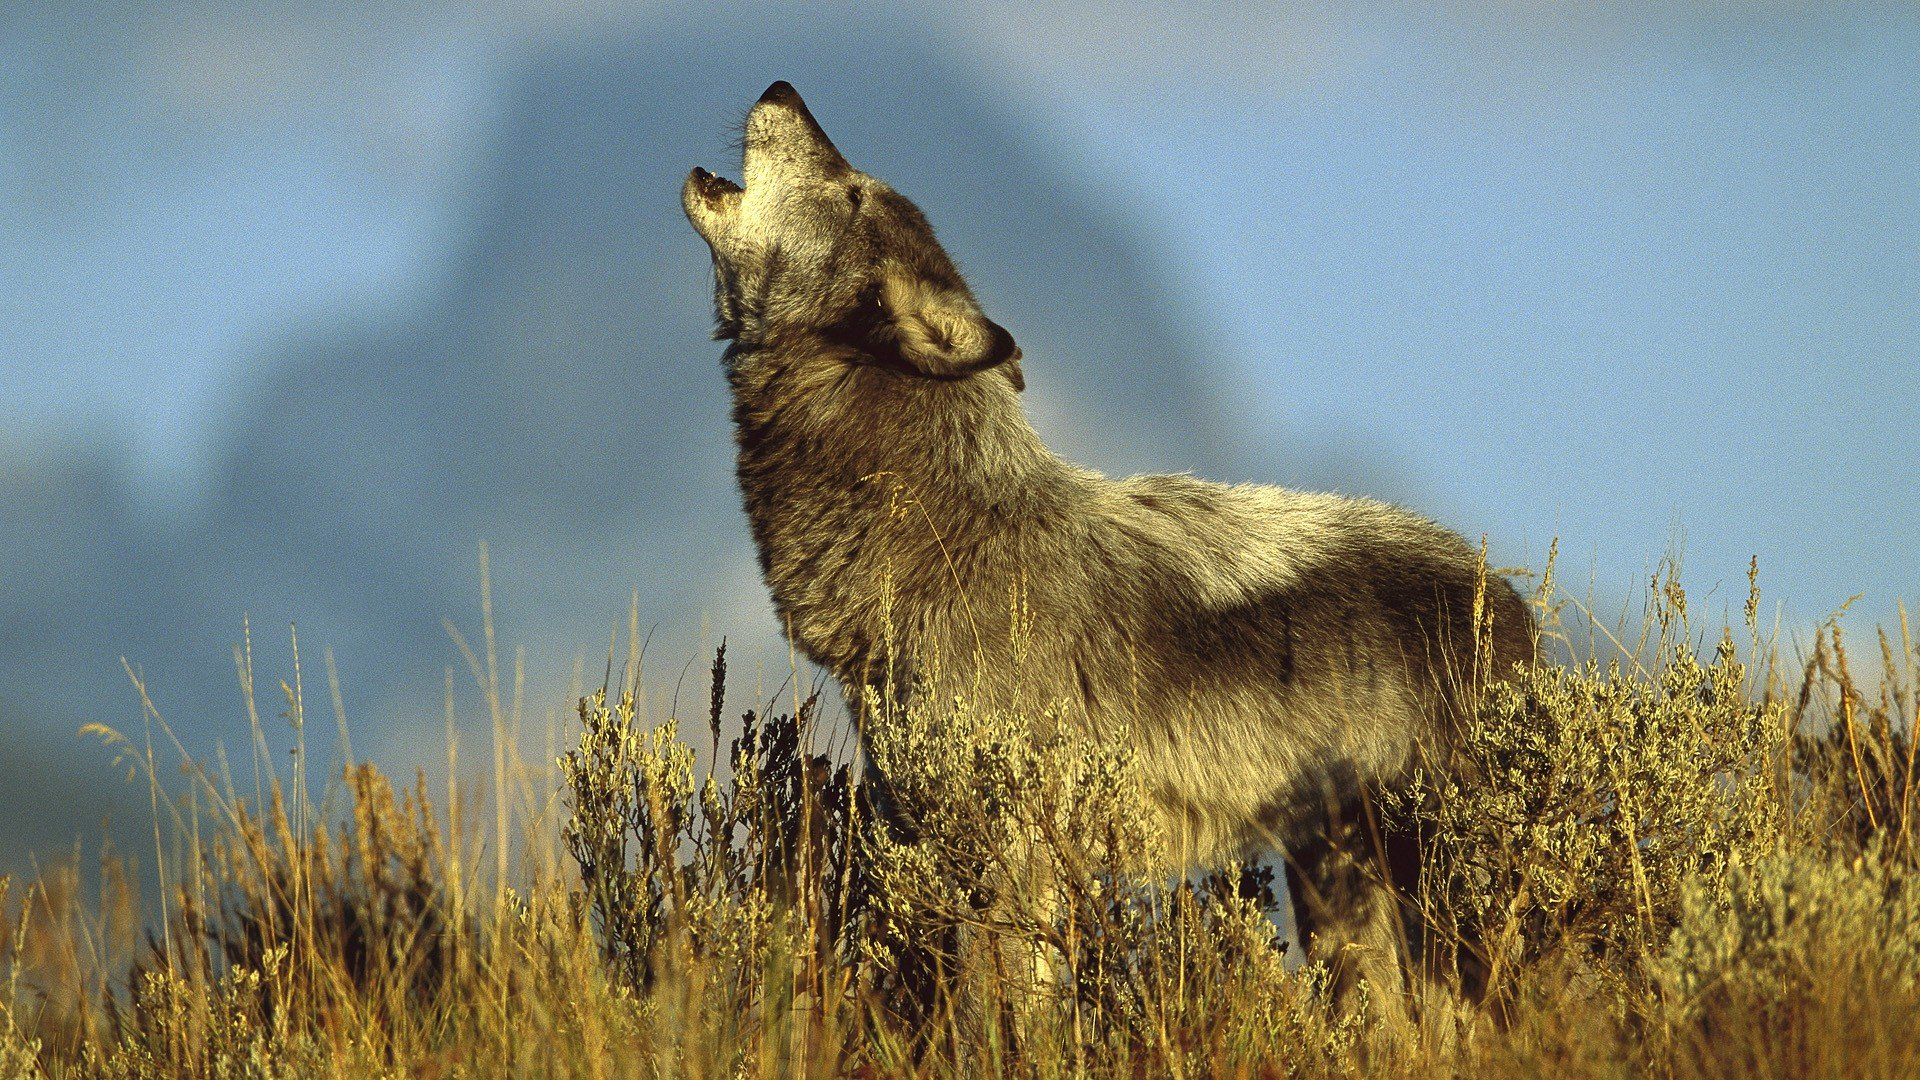 Download full hd 1920x1080 Wolf PC background ID:118322 for free